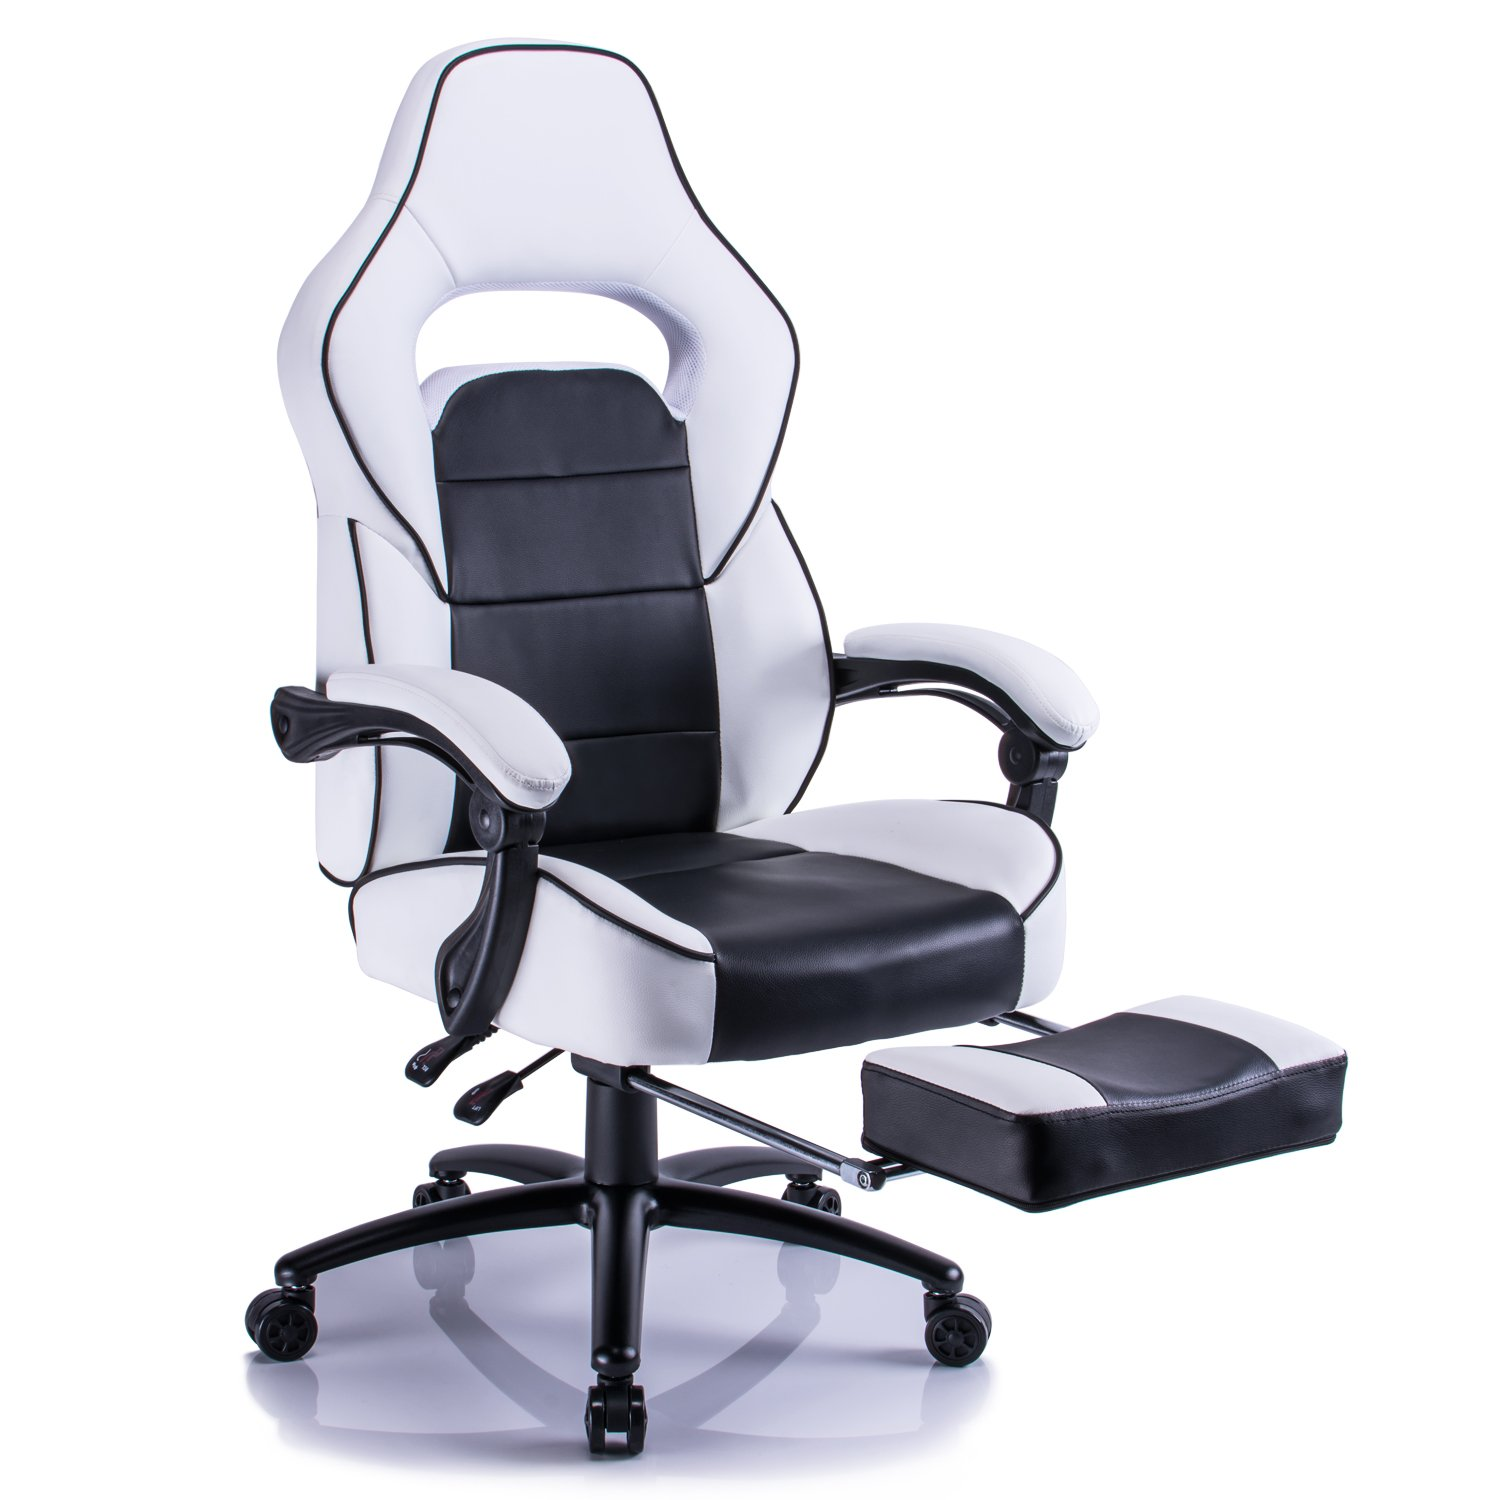 Aminiture Executive High Back Sport Racing Style Gaming Office Chair Recliner PU Leather Swivel Computer Desk Armchair with Footrest (White)